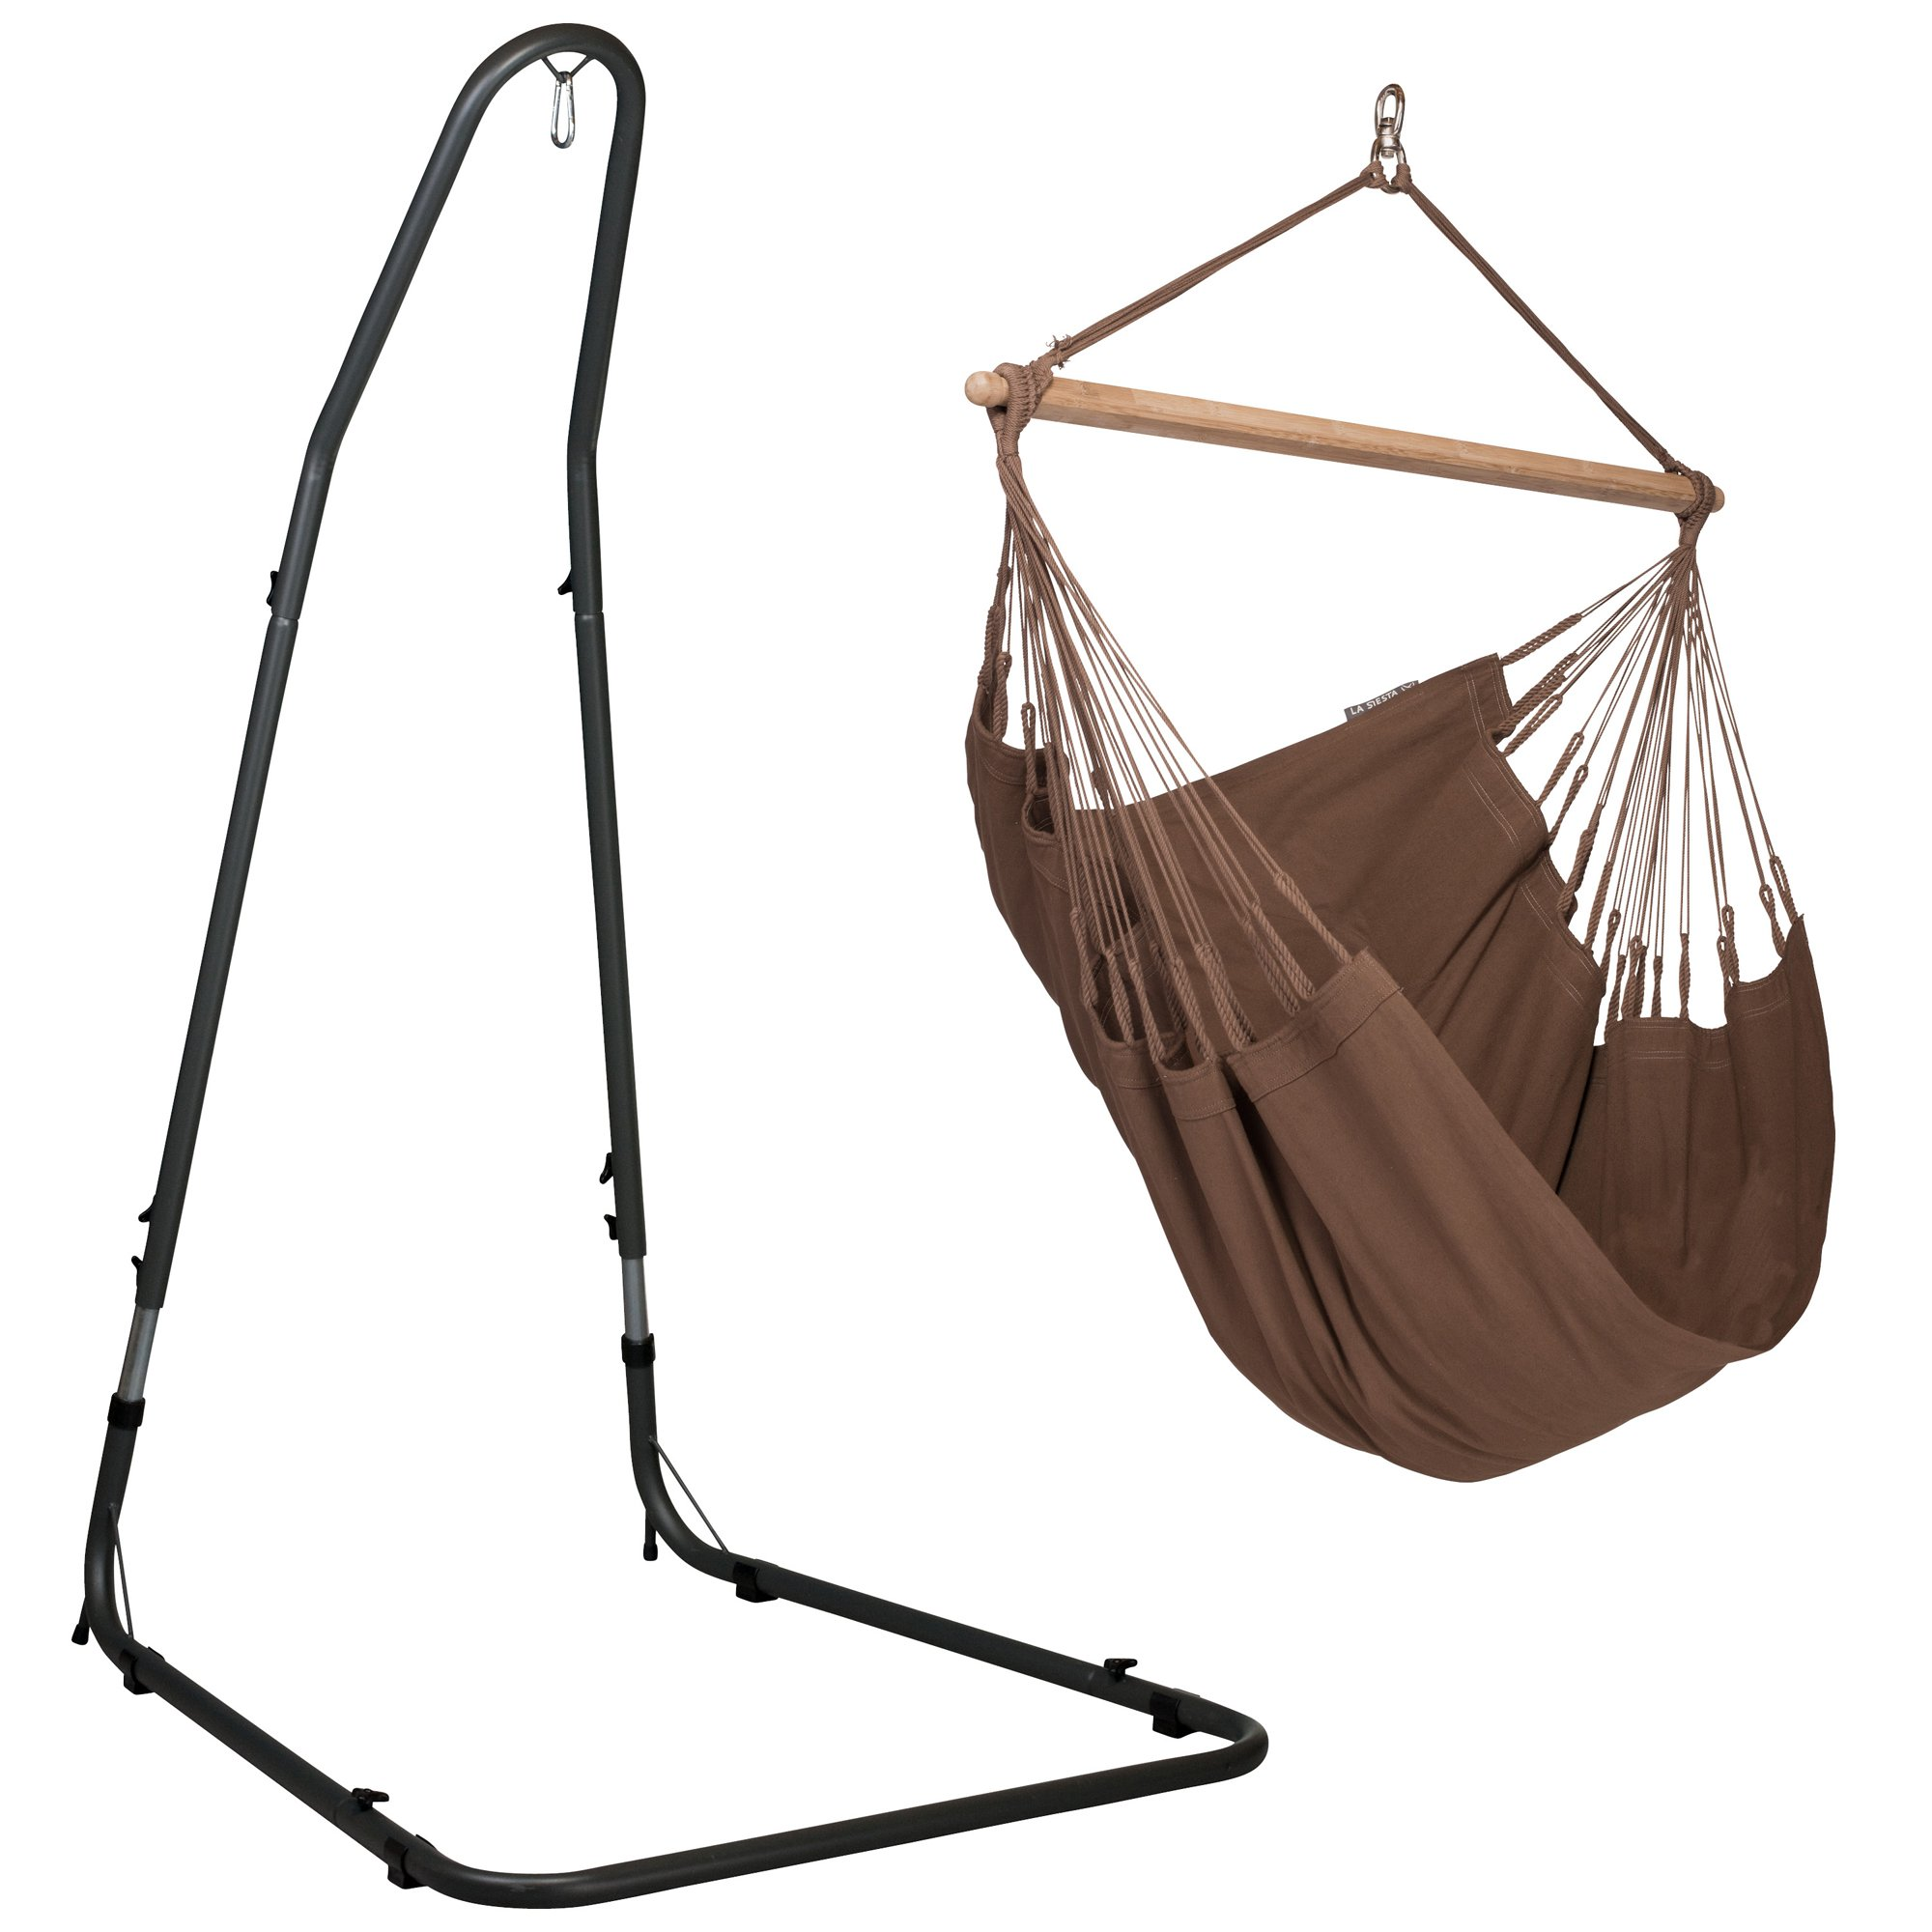 LA SIESTA Modesta Arabica - Organic Cotton Basic Hammock Swing Chair with Powder Coated Steel Stand